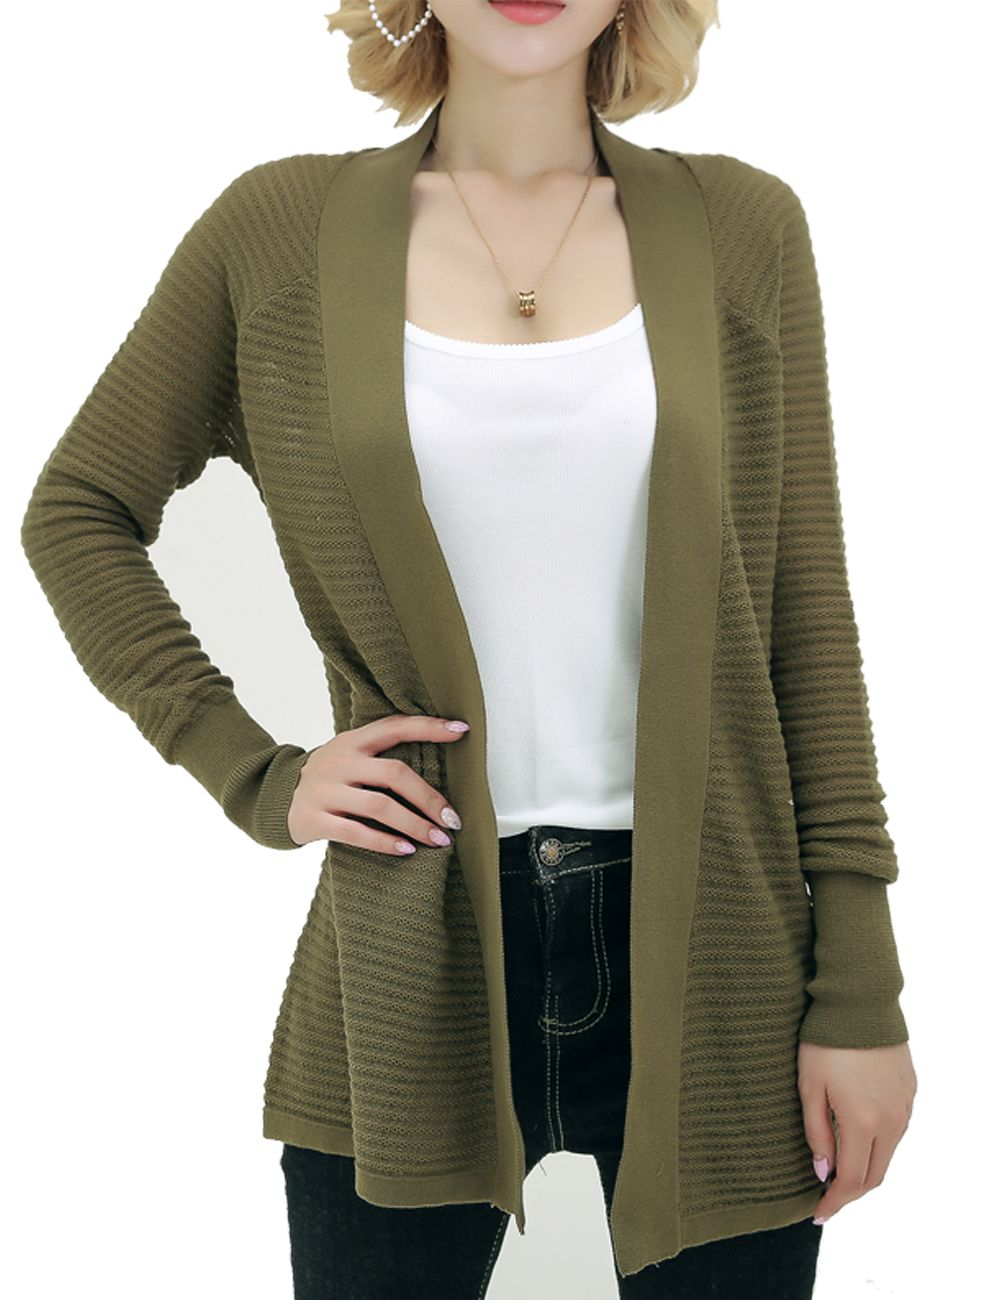 2aed843f18afd Cap Sleeves. Verano · Vensmile Green Thin Sexy Translucent Cool Shawl  Cardigans For Summer. Shawl Cardigan